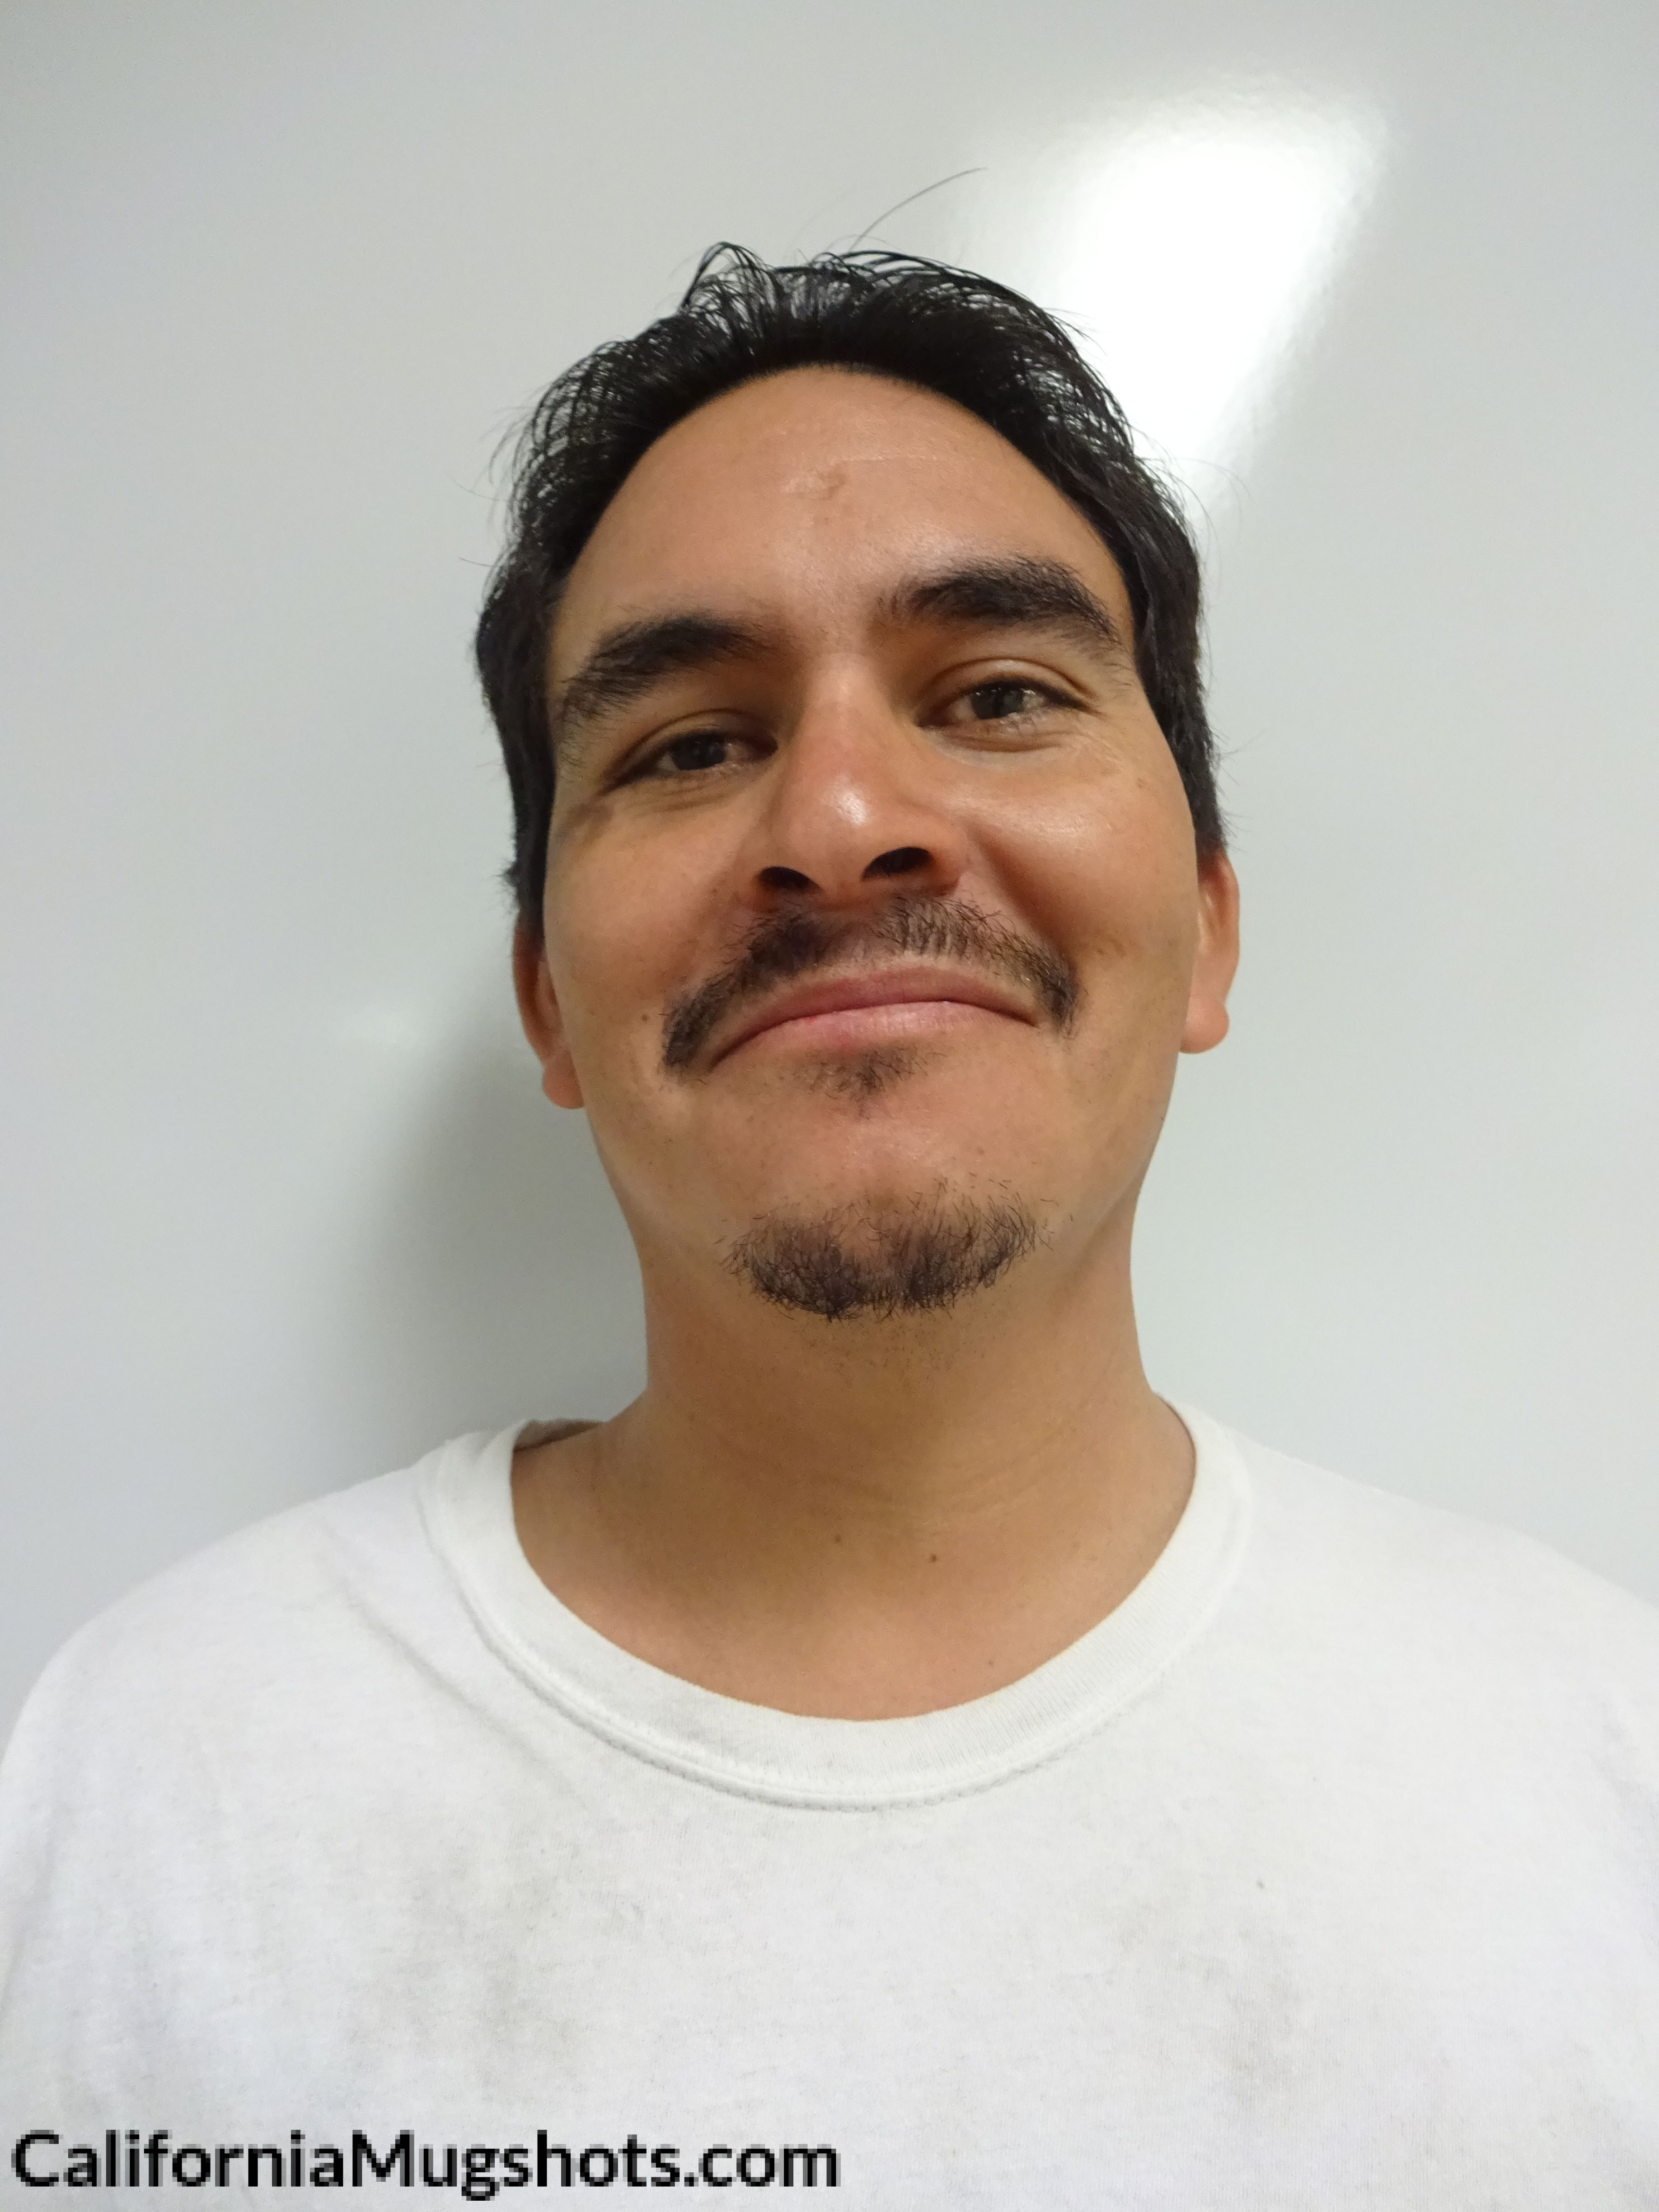 Alfonso Hernandezguzman arrested in Lake County,CA